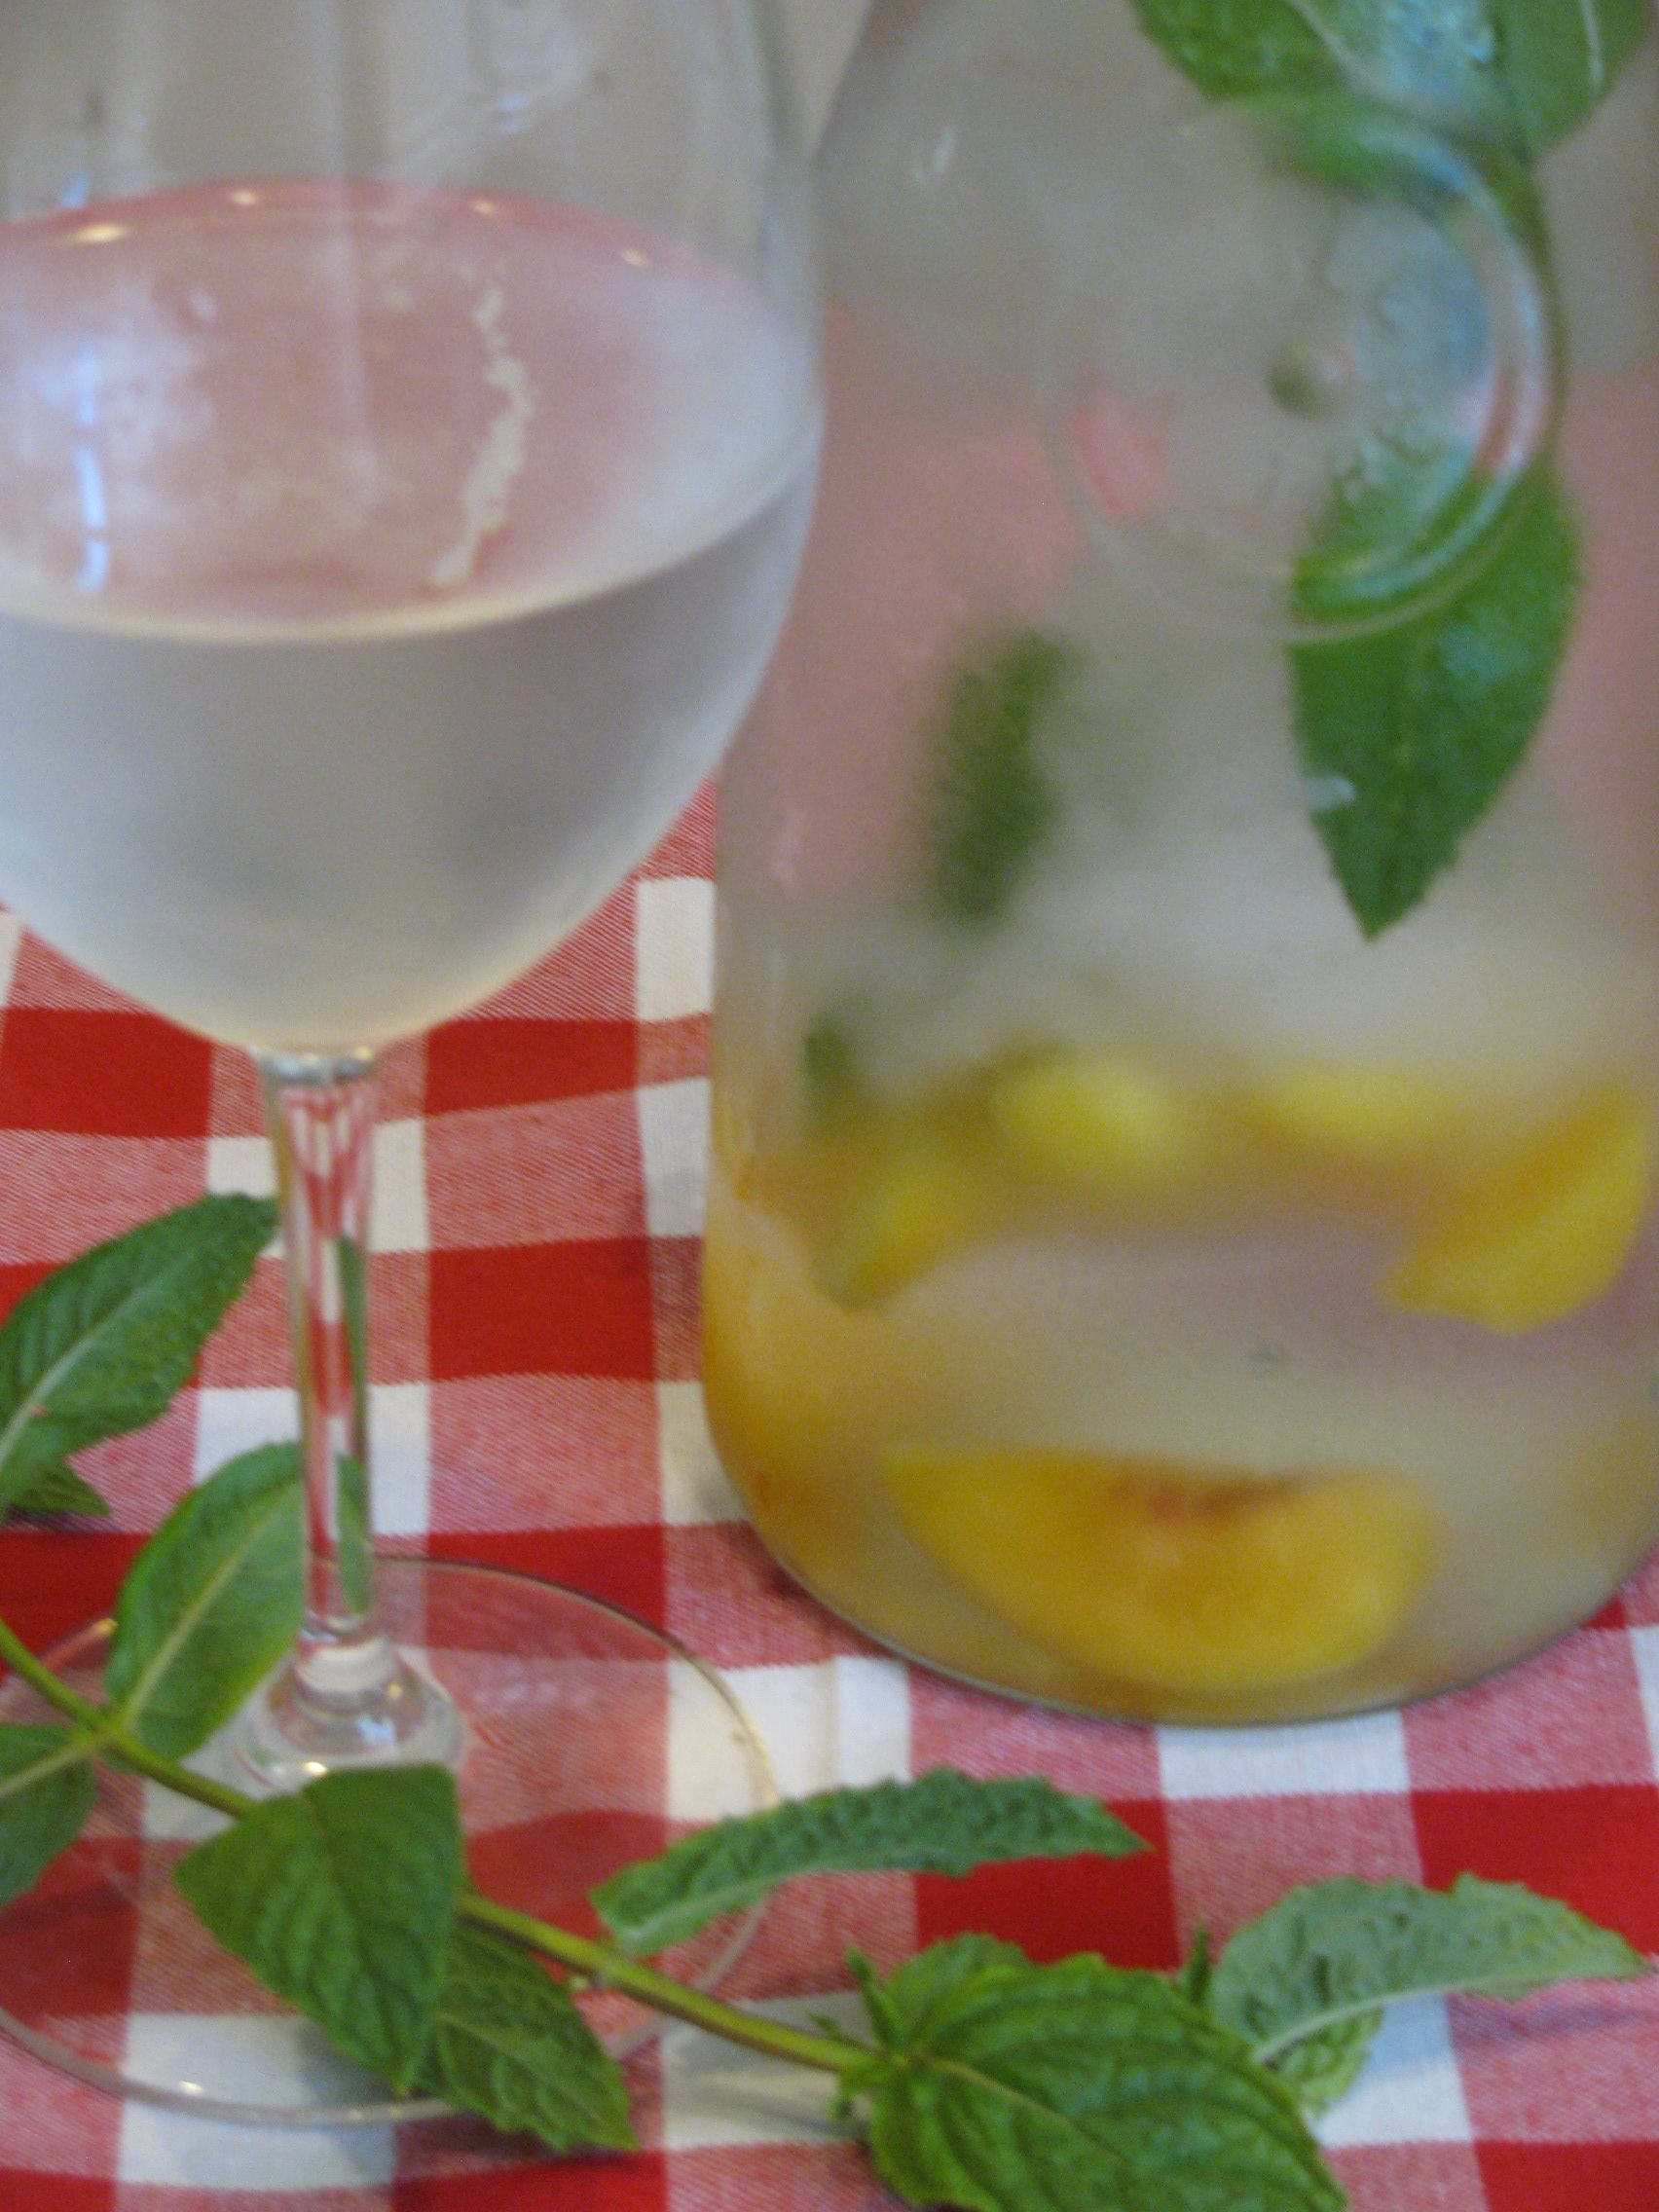 Mint Infused Water with Peaches That Cools You Off